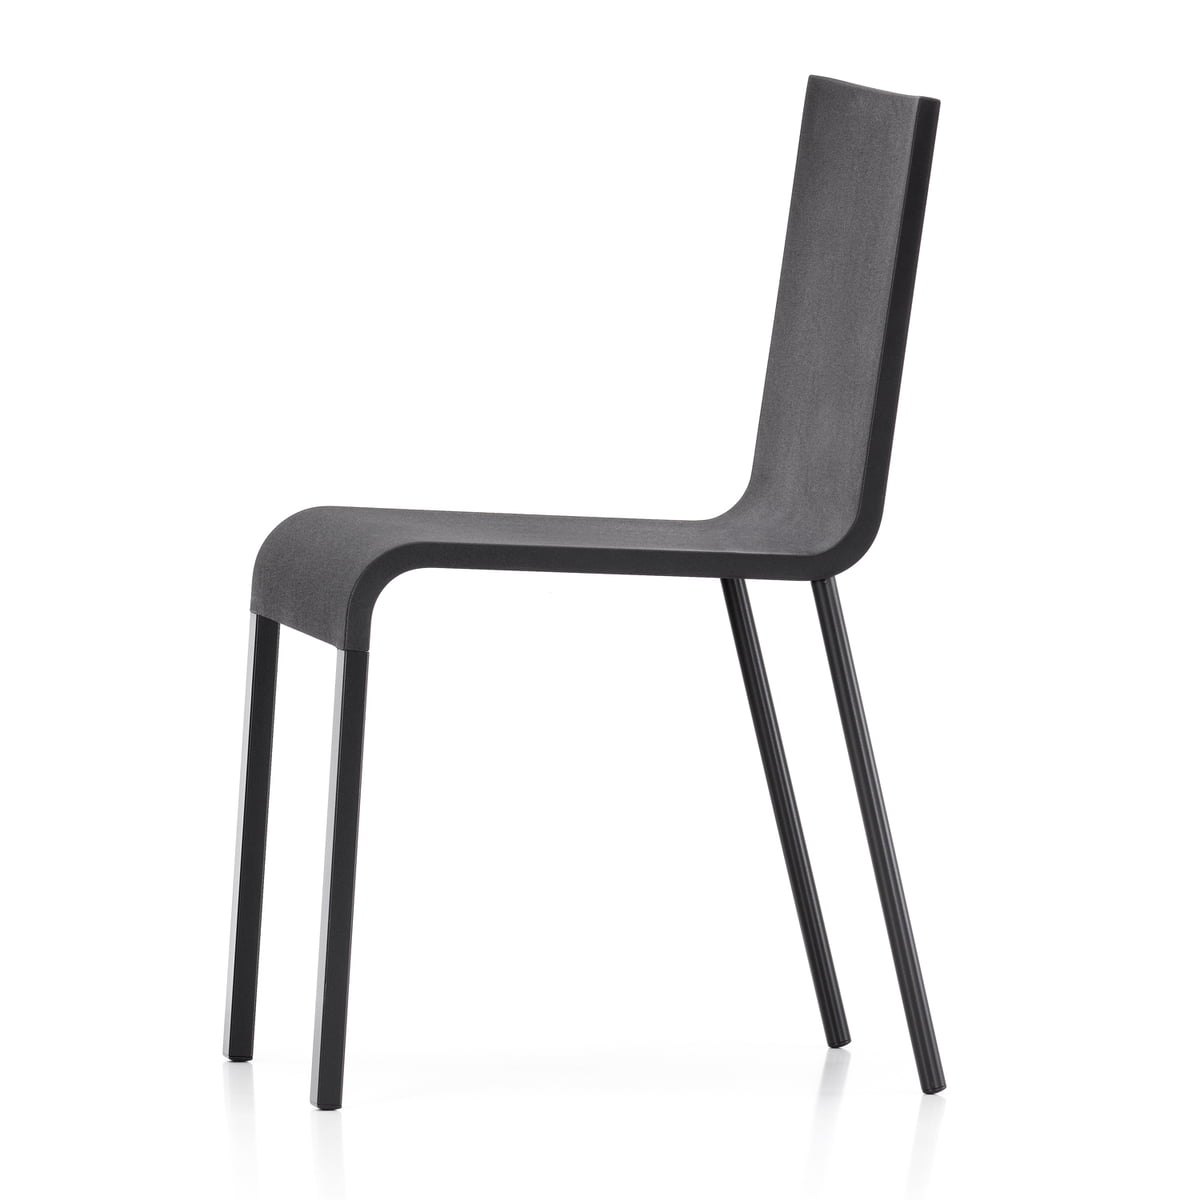 vitra 03 chair in the home design shop. Black Bedroom Furniture Sets. Home Design Ideas